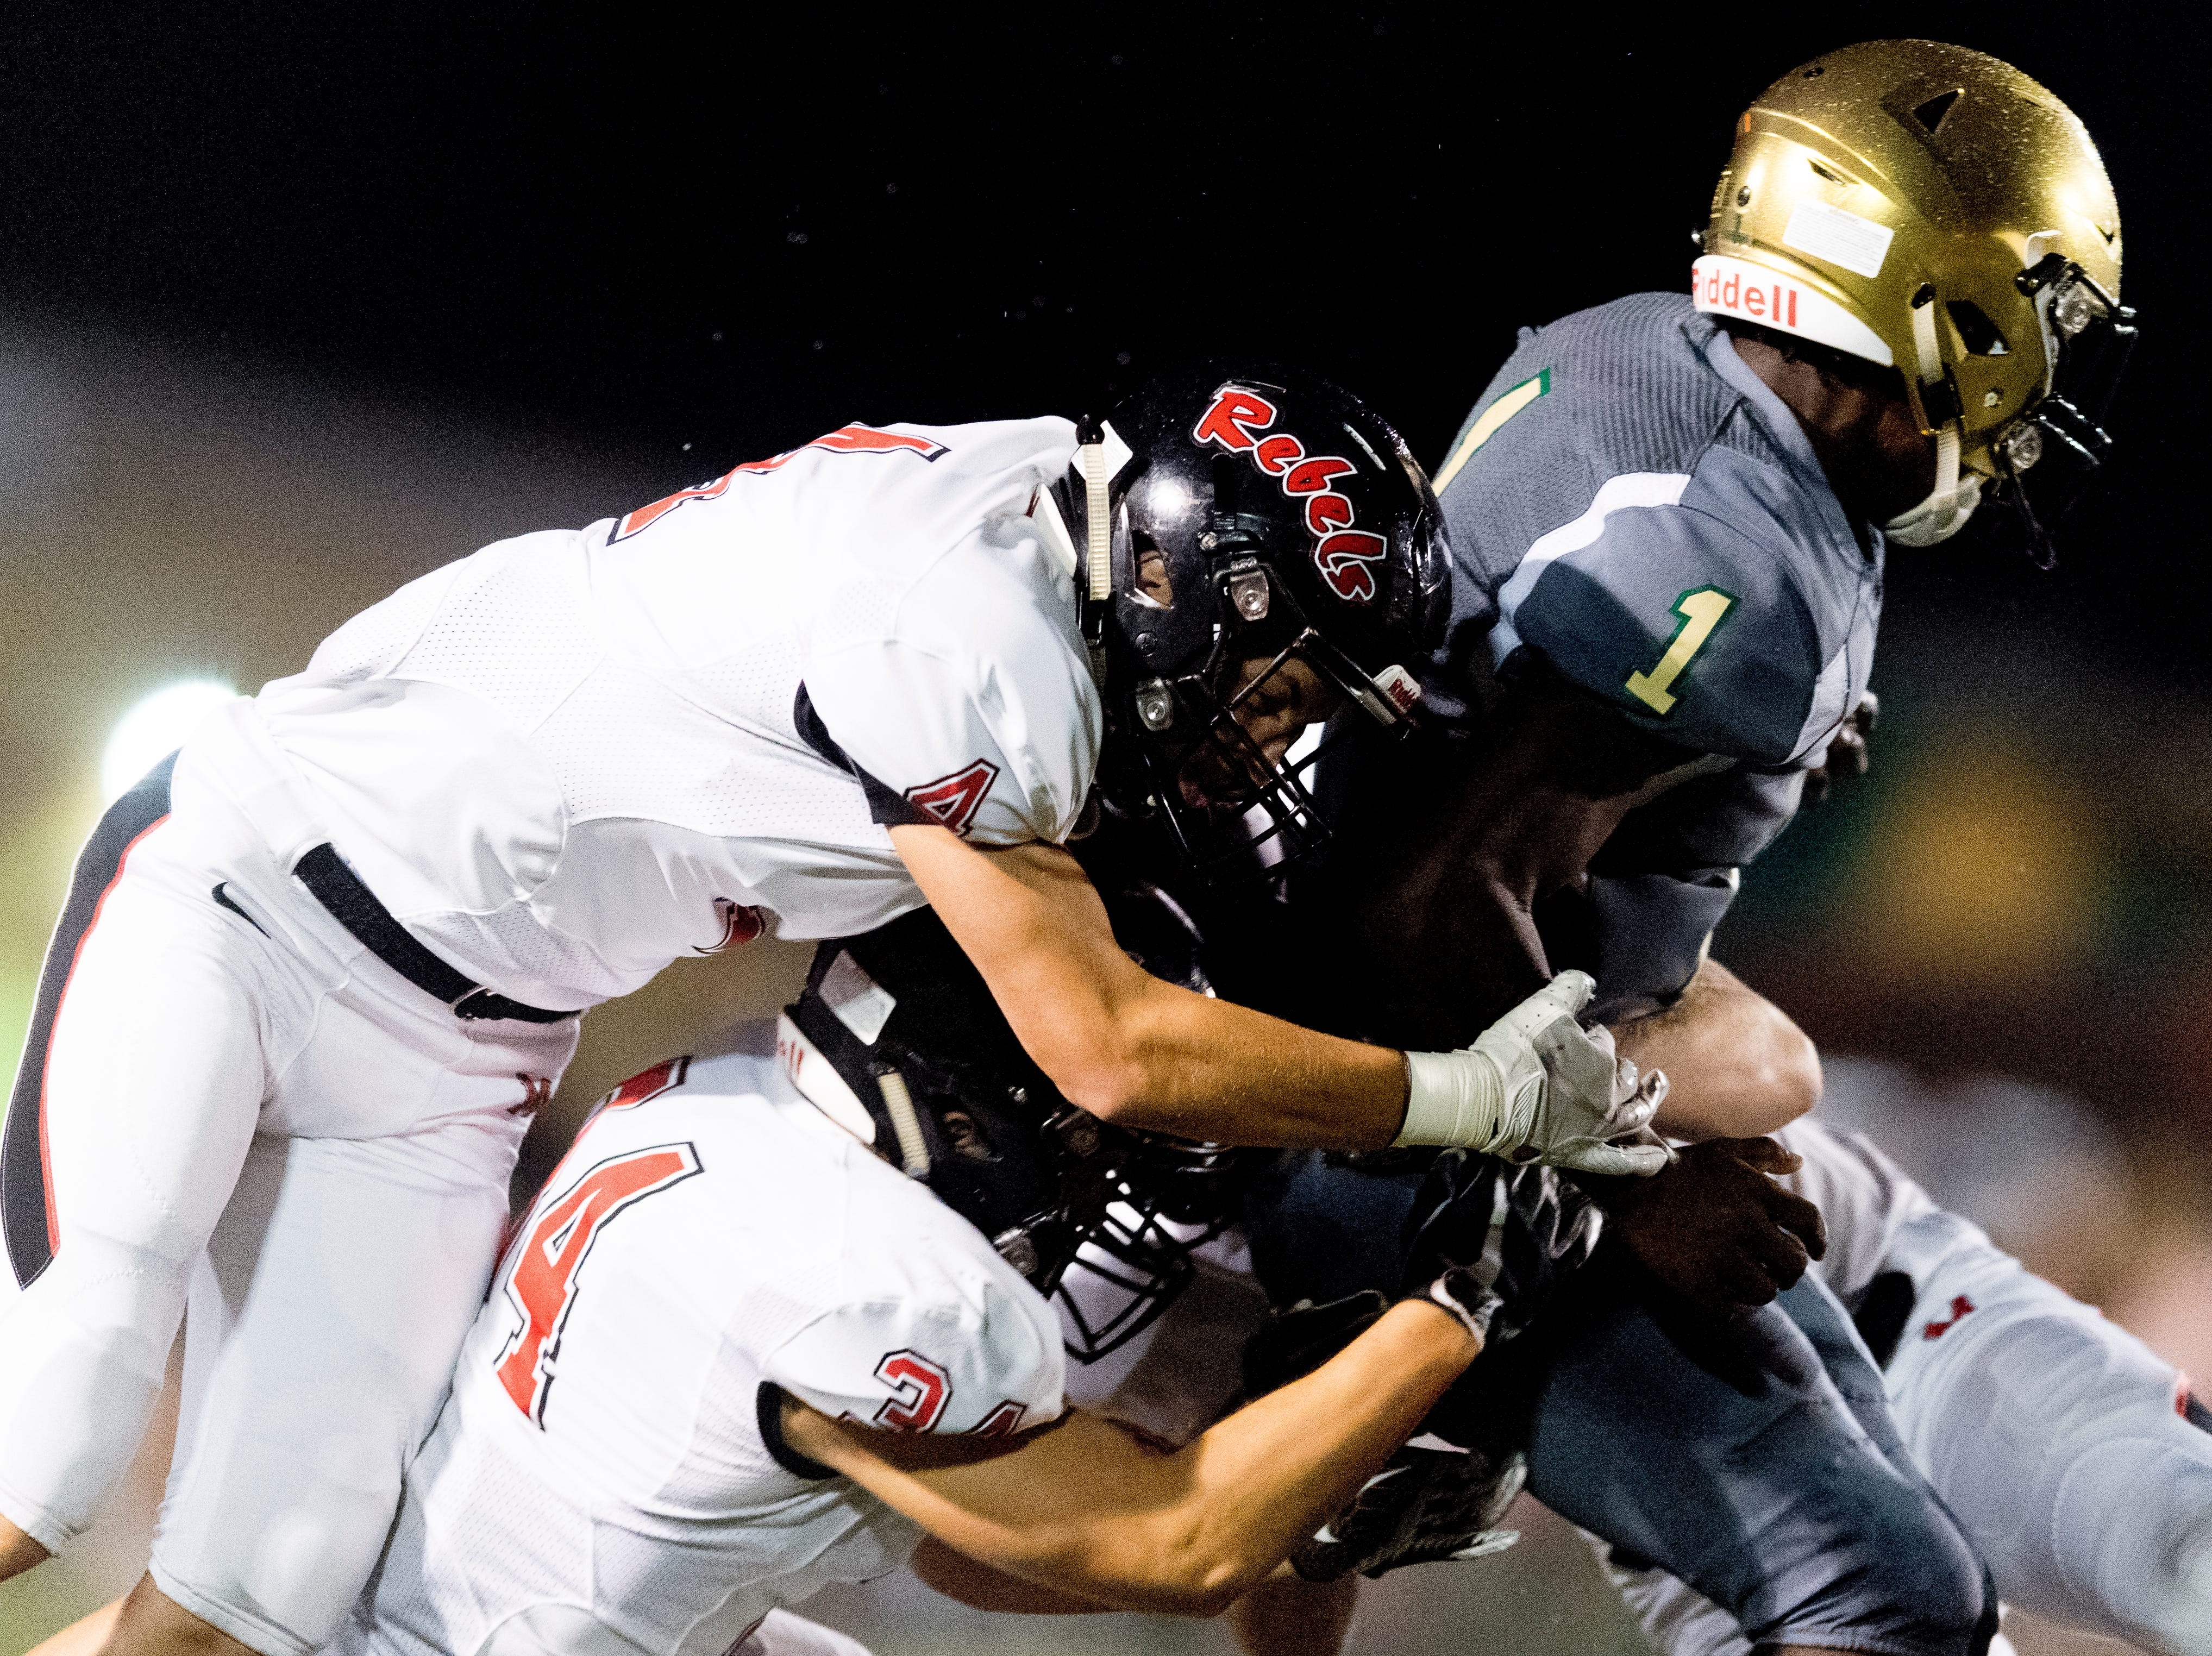 Catholic's Keondre' Jarmon (1) is tackled by Maryville's Drew Crowder (4) and Maryville's Sean Ward (34) during a football game between Maryville and Catholic at Catholic High School in Knoxville, Tennessee on Friday, August 17, 2018.